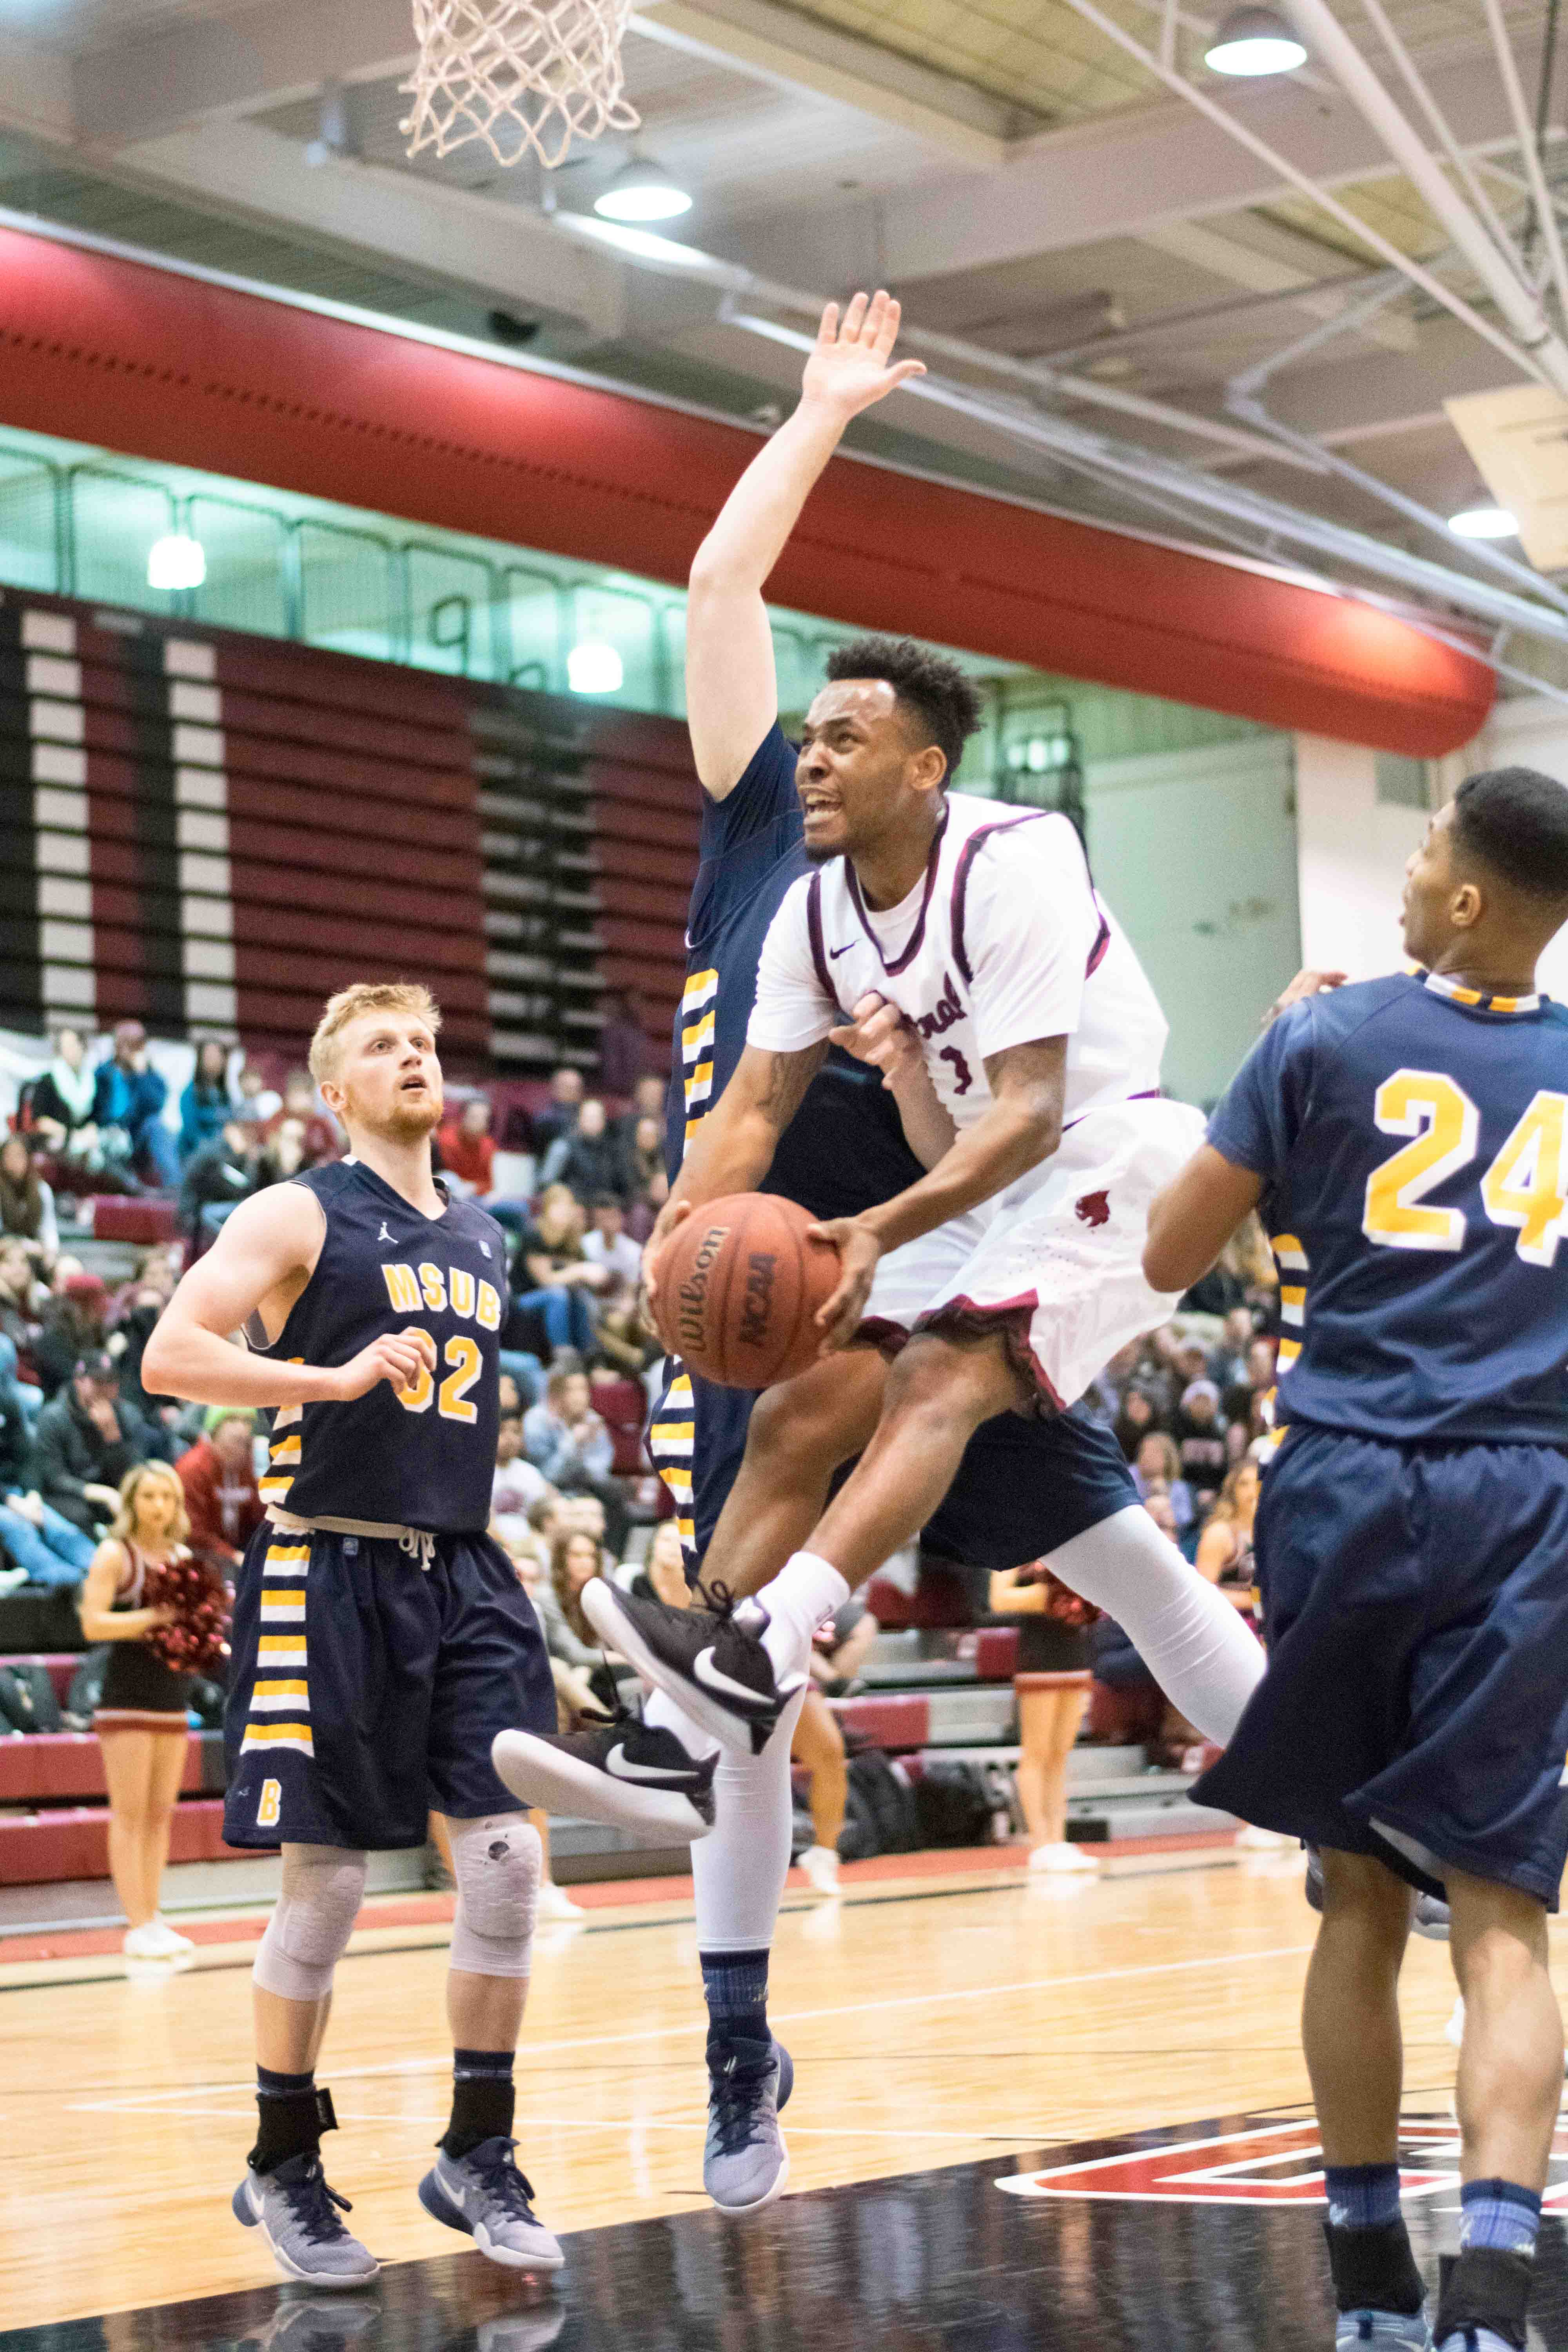 Junior guard Marc Rodgers drives to the basket during a game against Montana State Billings.